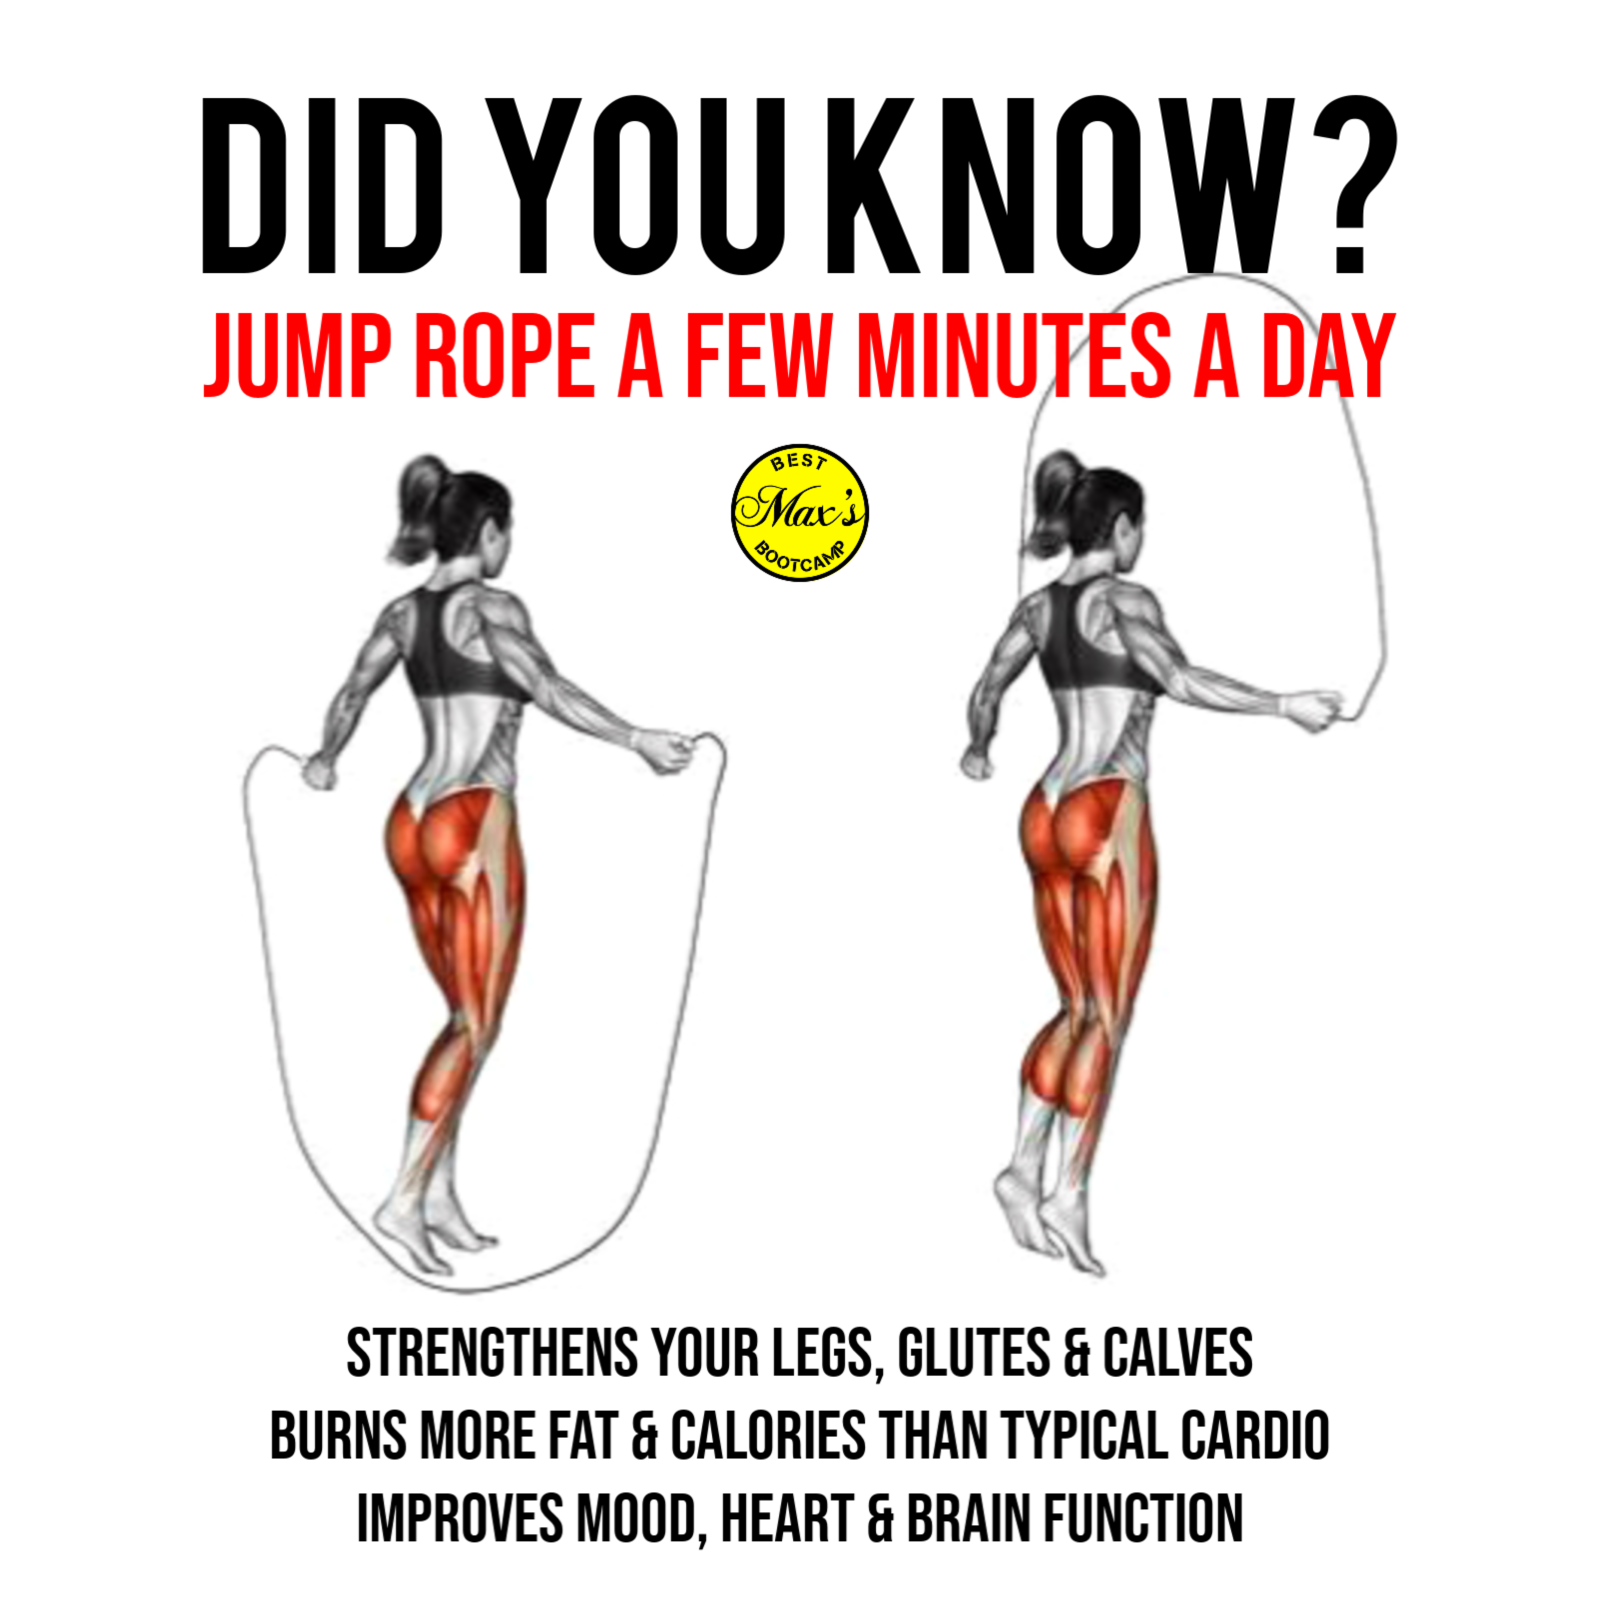 jump rope benefits.png